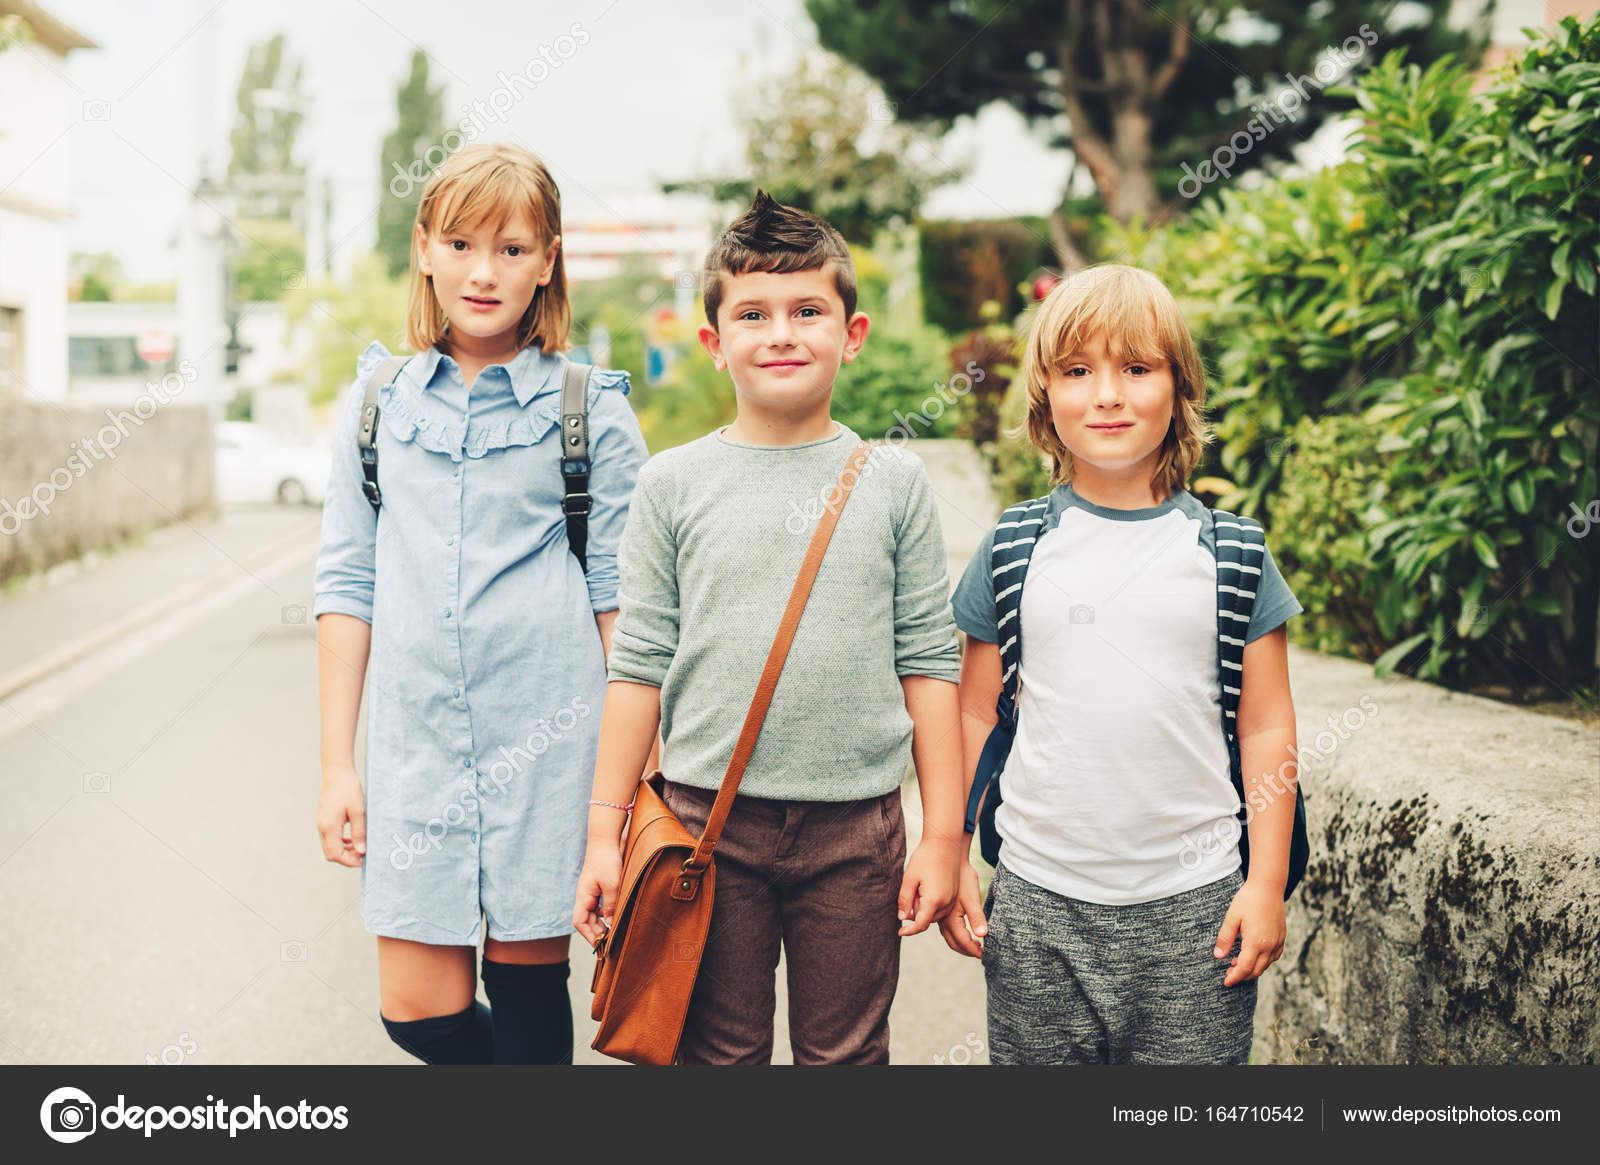 a8869751f7 Cute kids with backpacks walking back to school — Stock Photo ...